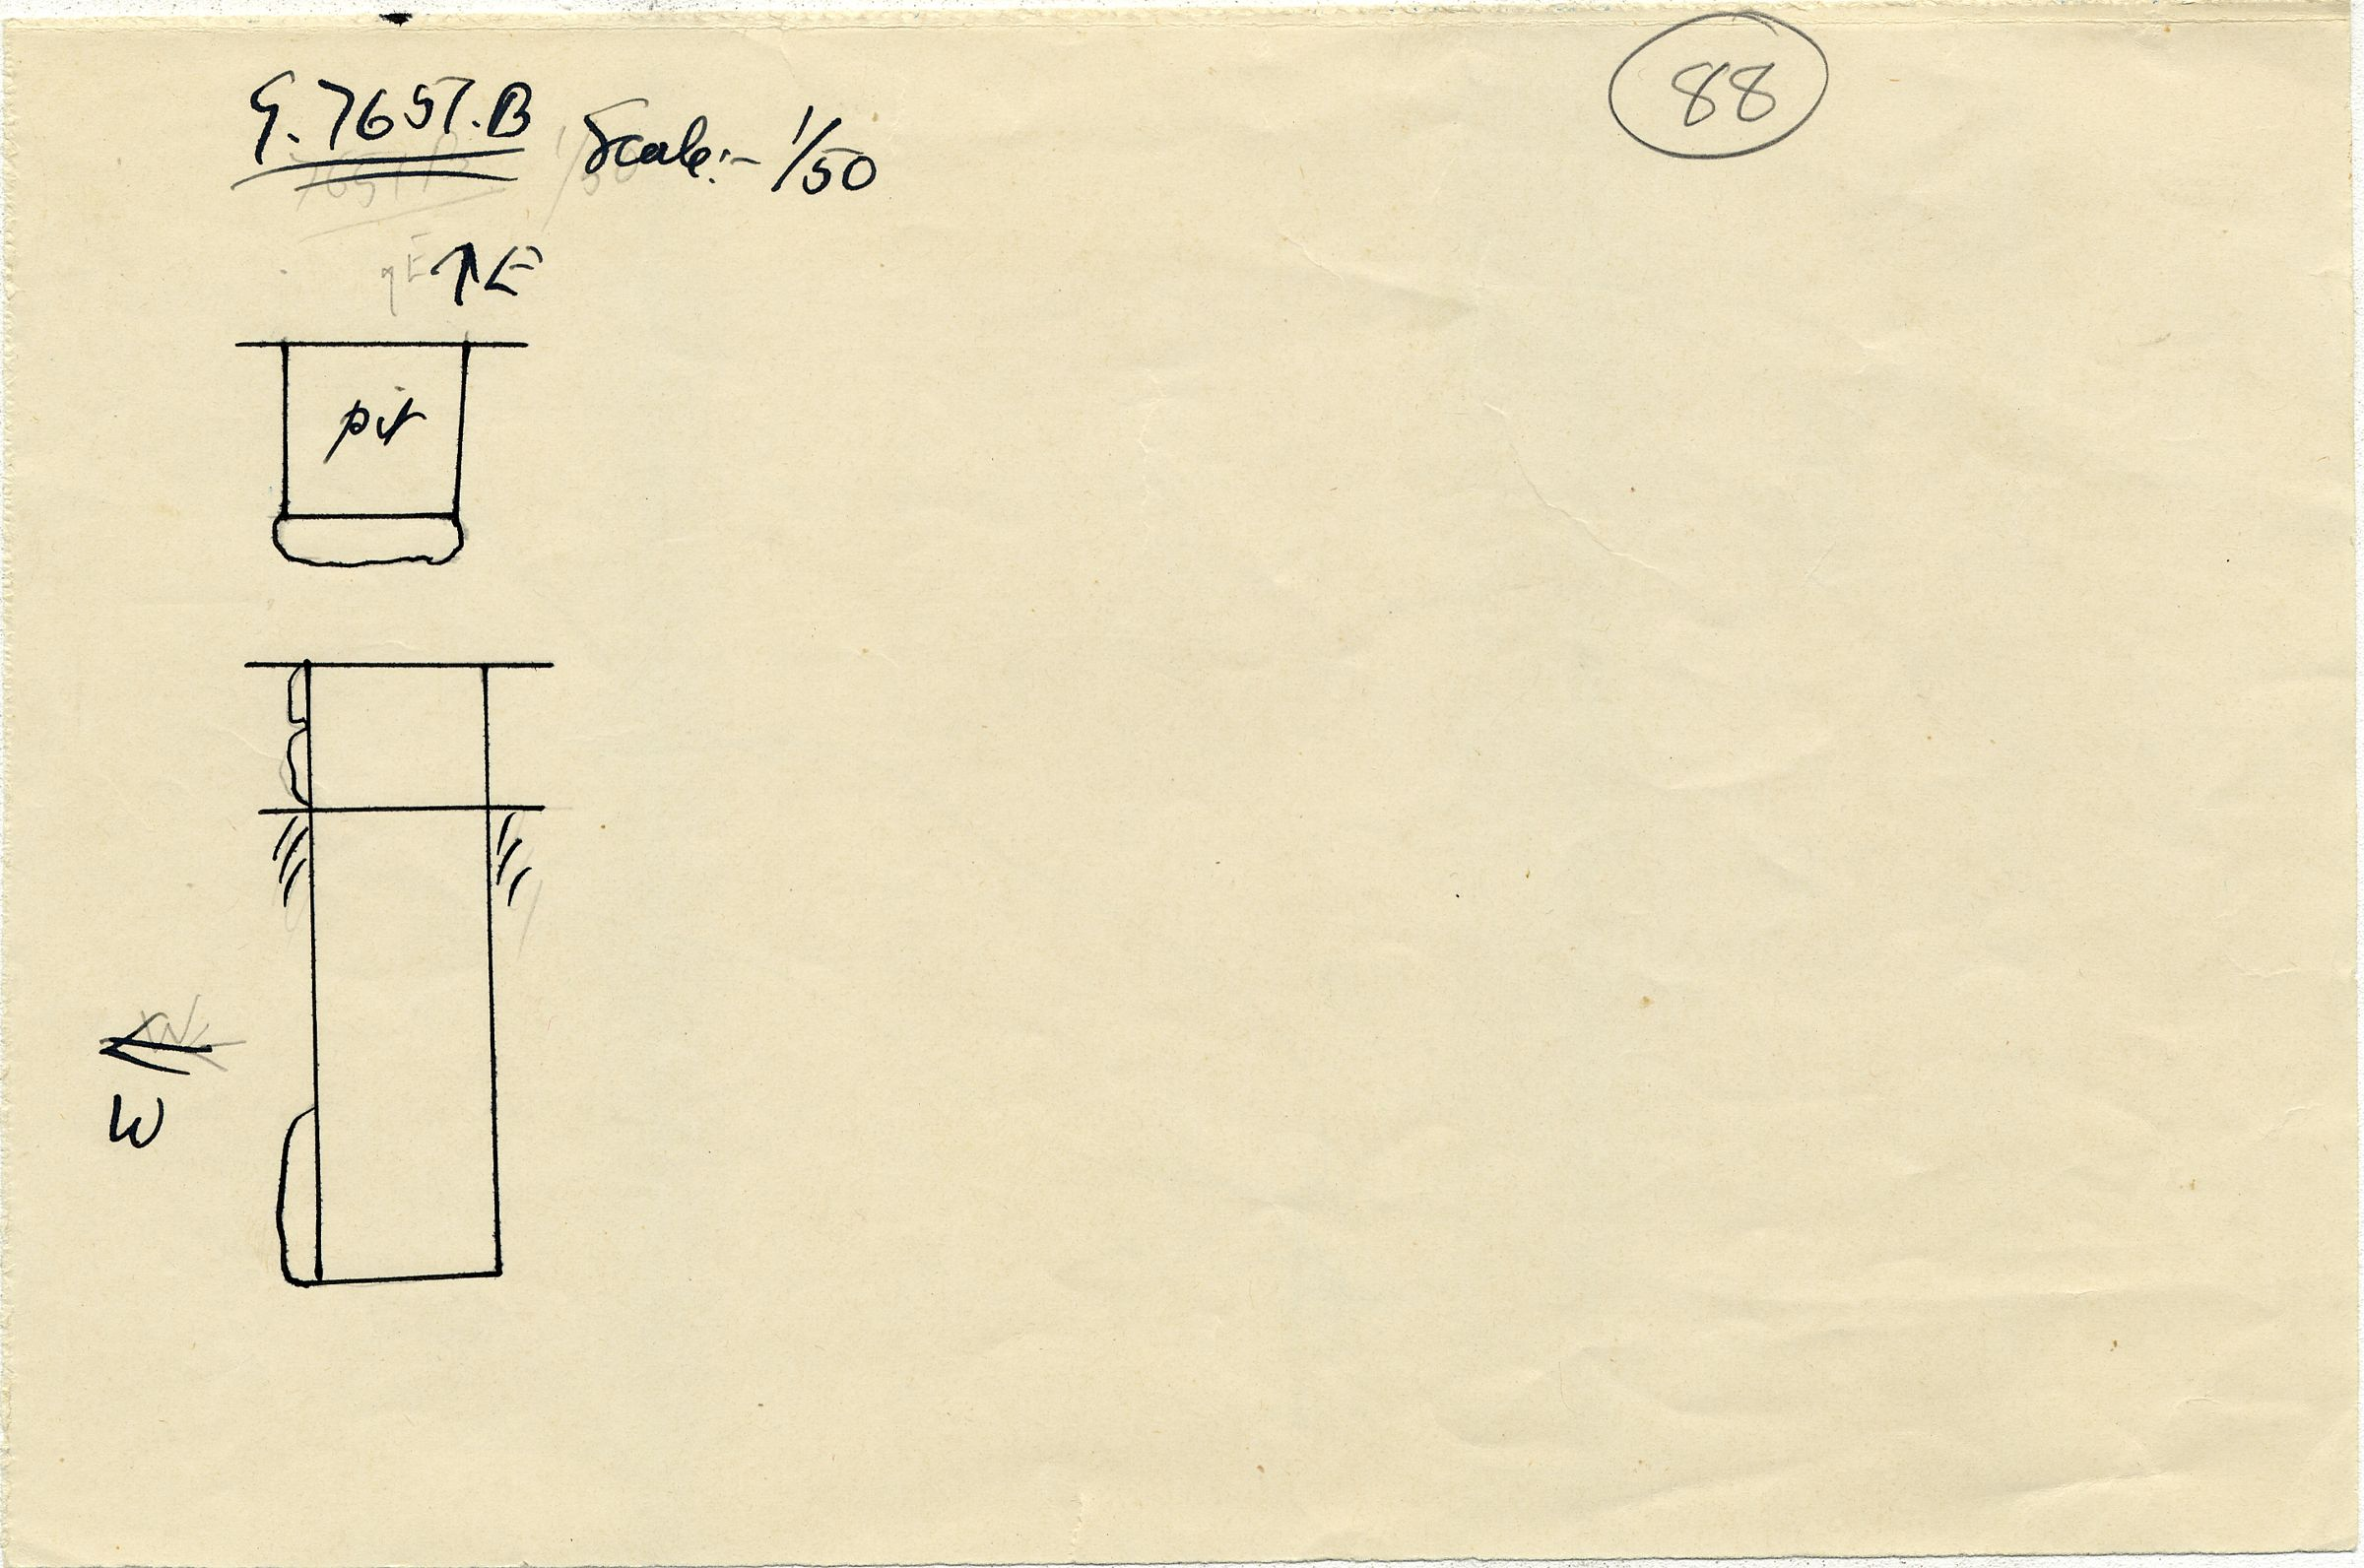 Maps and plans: G 7651, Shaft B